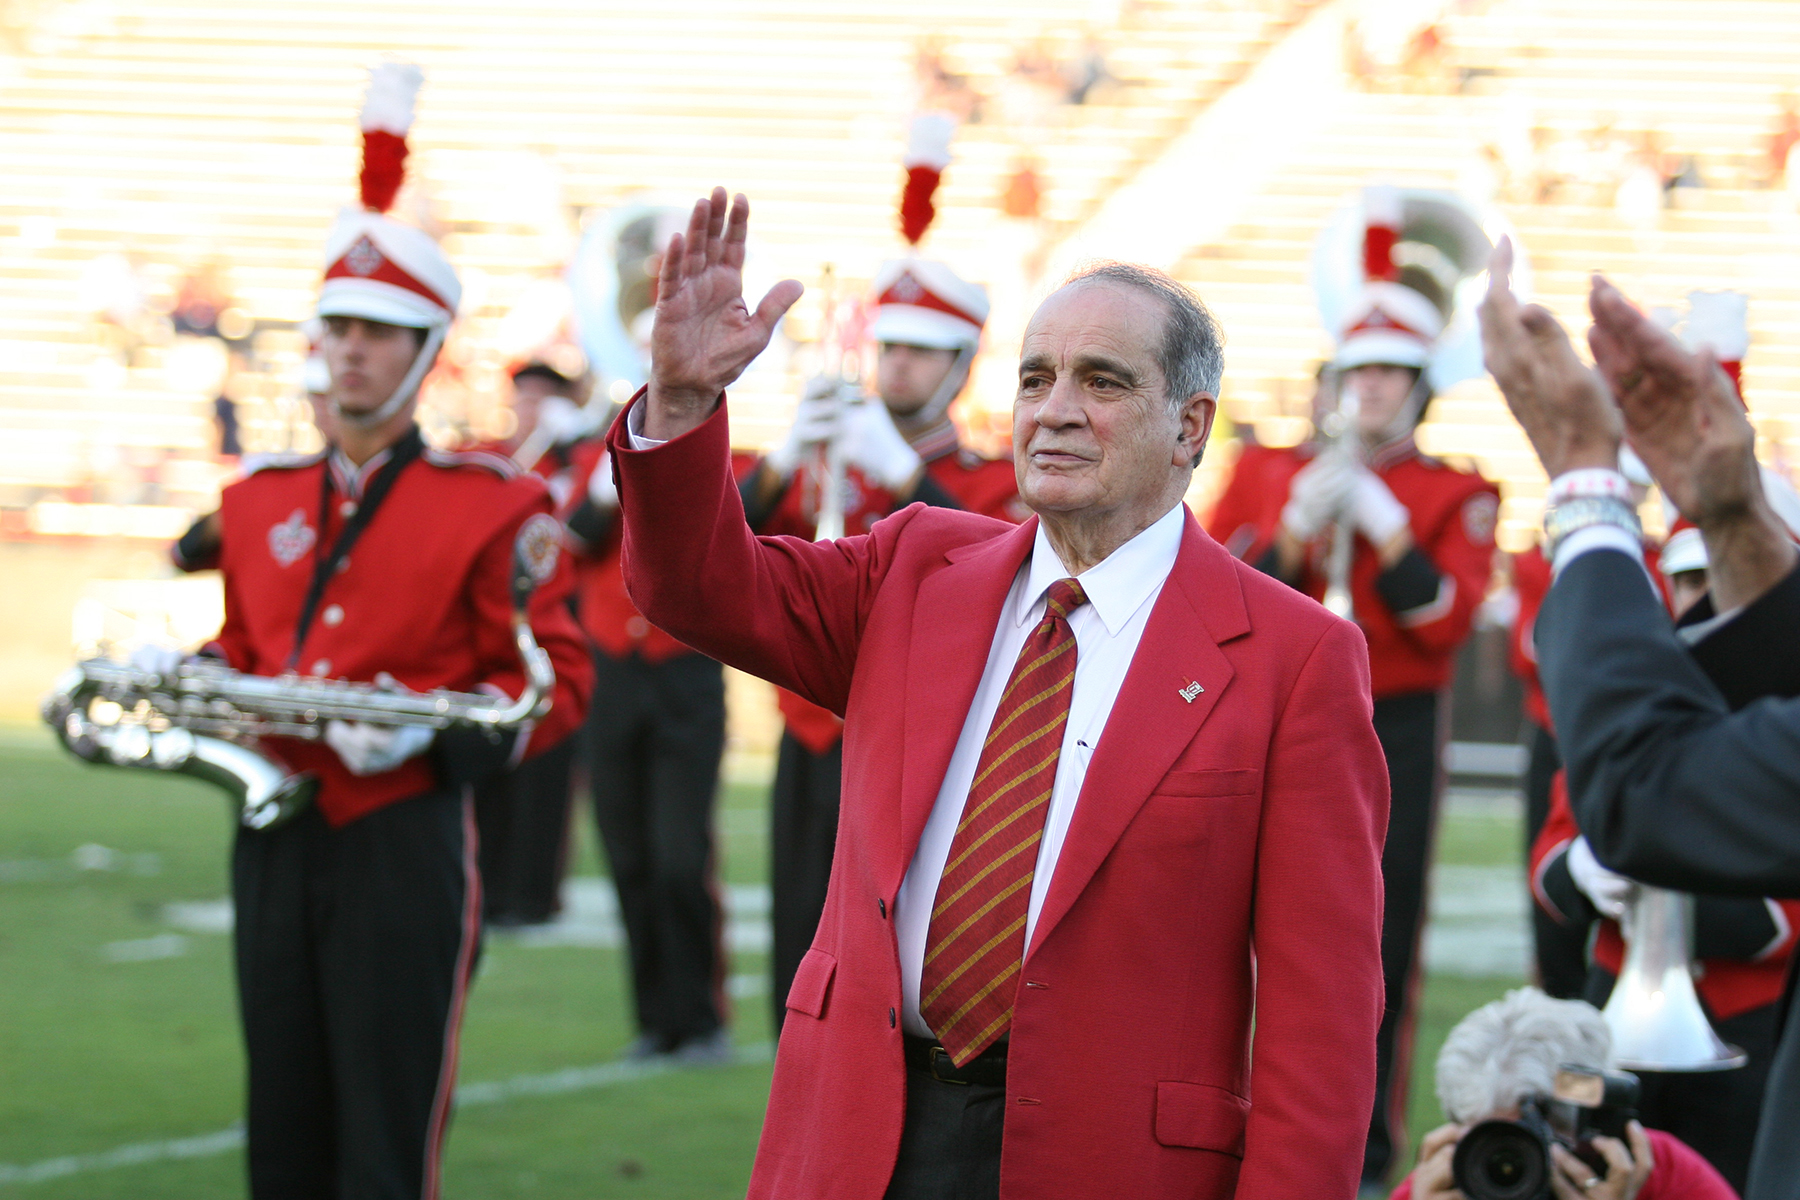 Dr. Ray Authement waves to the crowd at Cajun Field with the Pride of Acadiana